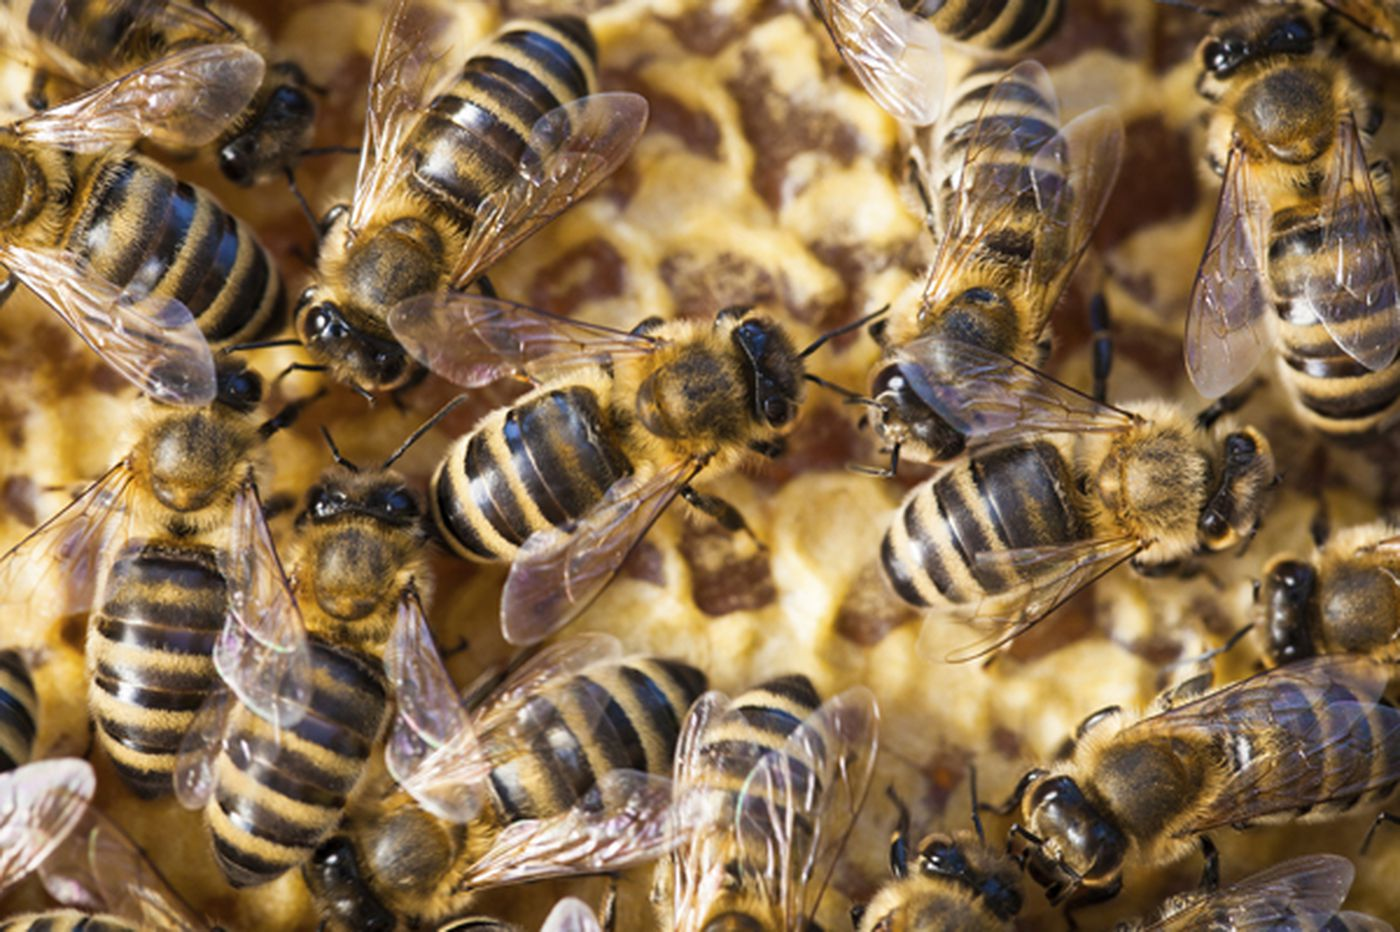 Your Place: Noise may be bees or wasps